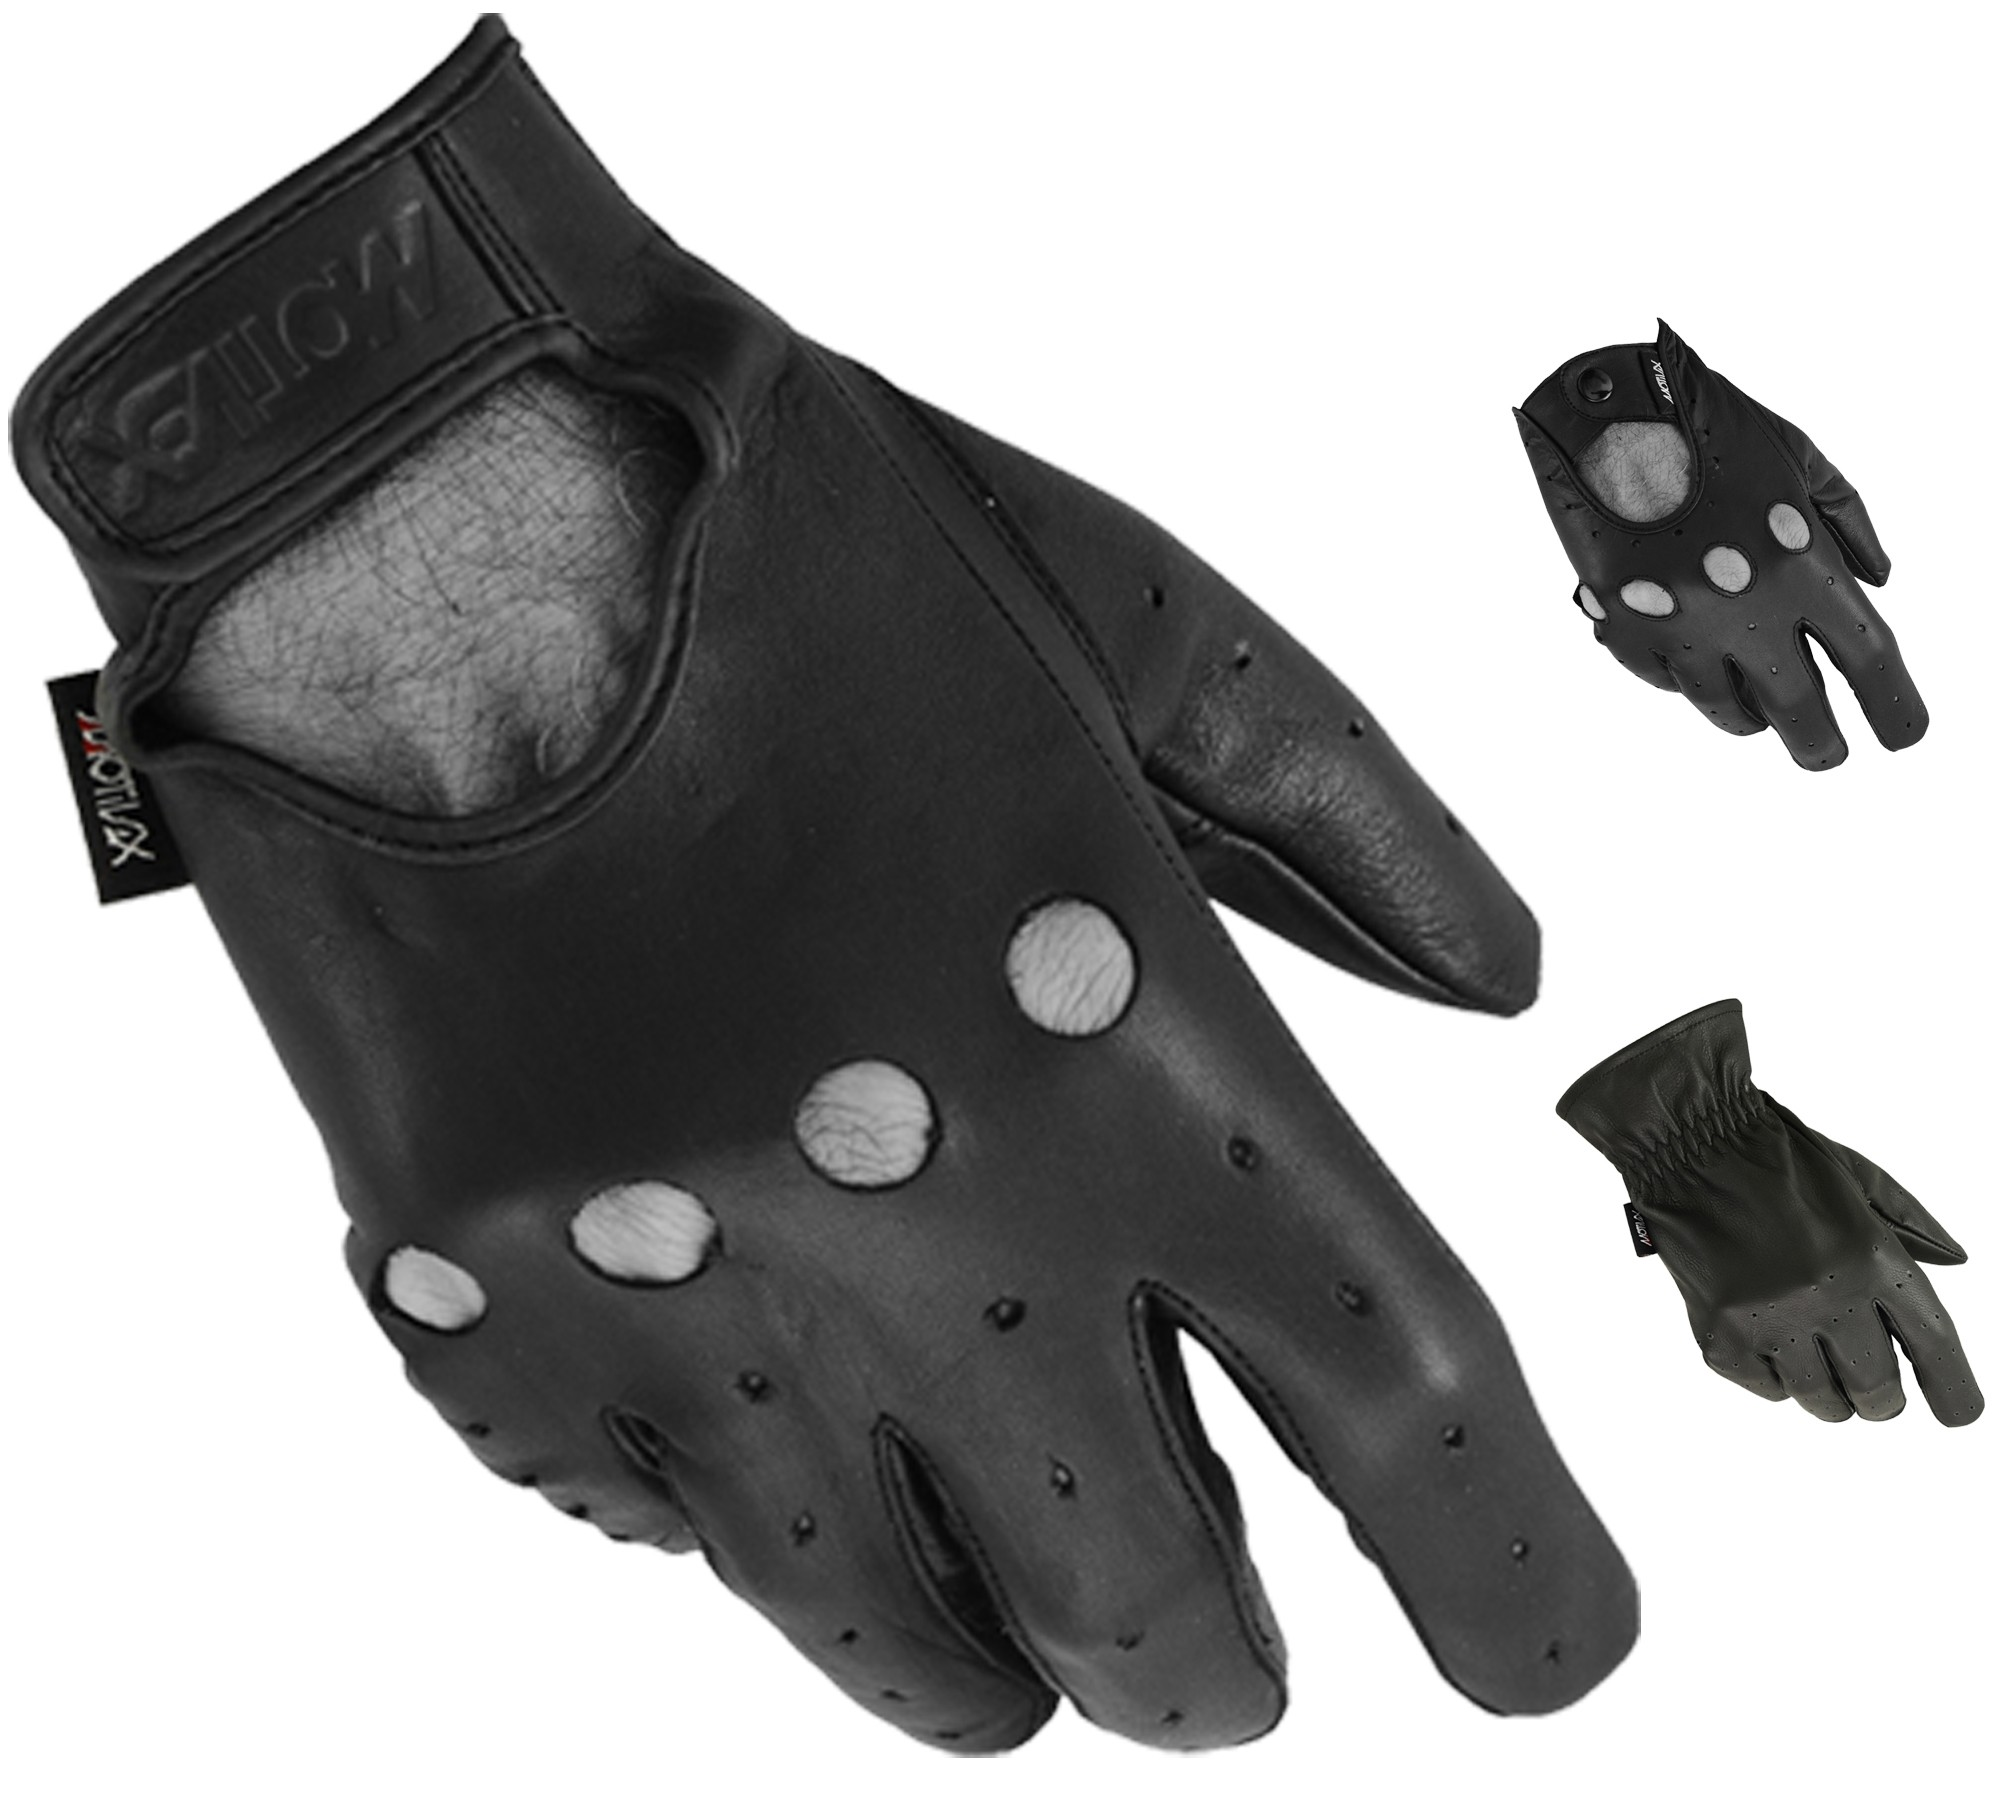 MRX Driving Gloves Basic Soft Outdoor Glove Goat Leather Workout Full Finger, Black